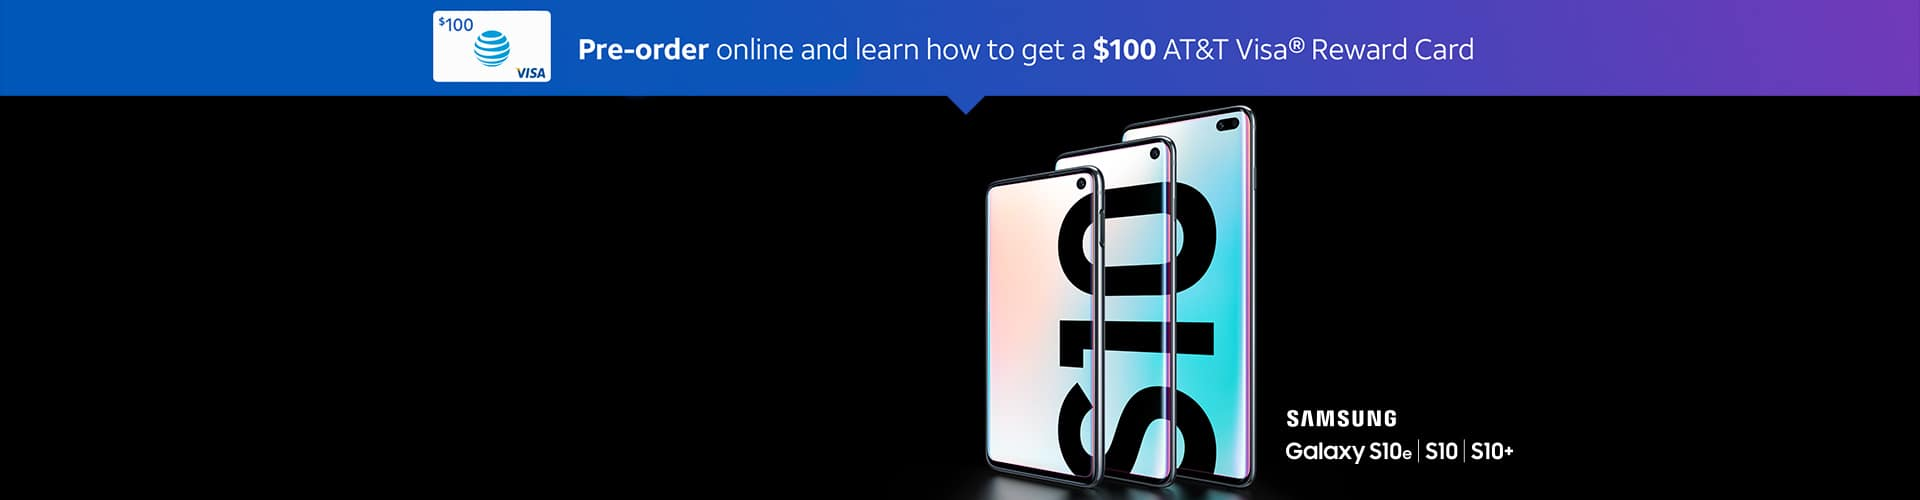 Go Business Mobile Plan $65 Prepaid Phone Plans Unlimited Data From At T Prepaid